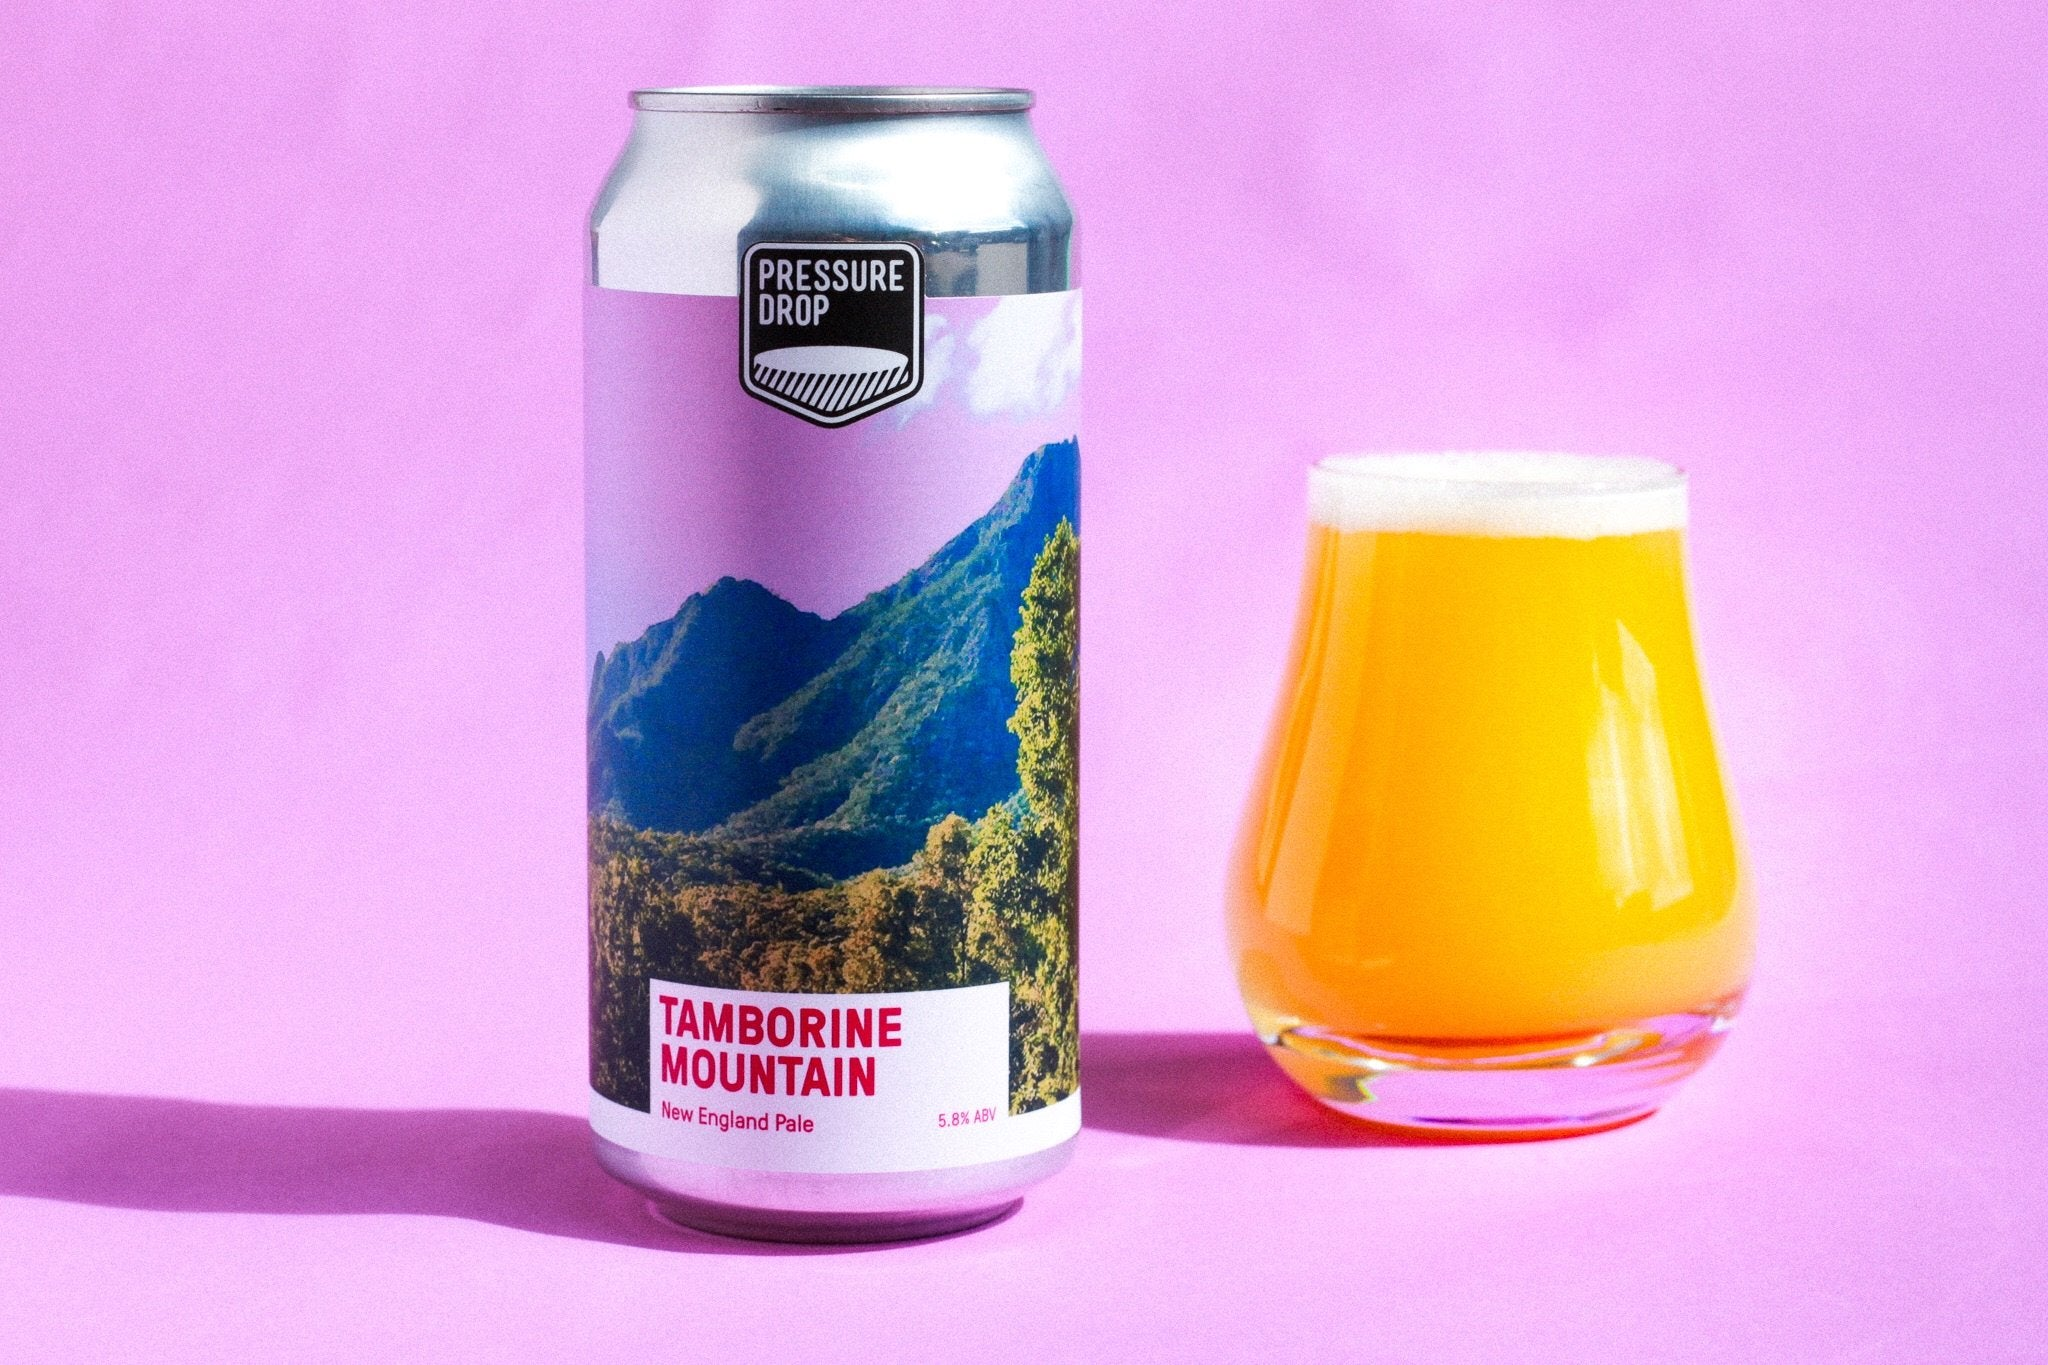 Tamborine Mountain New England Pale - NEPA